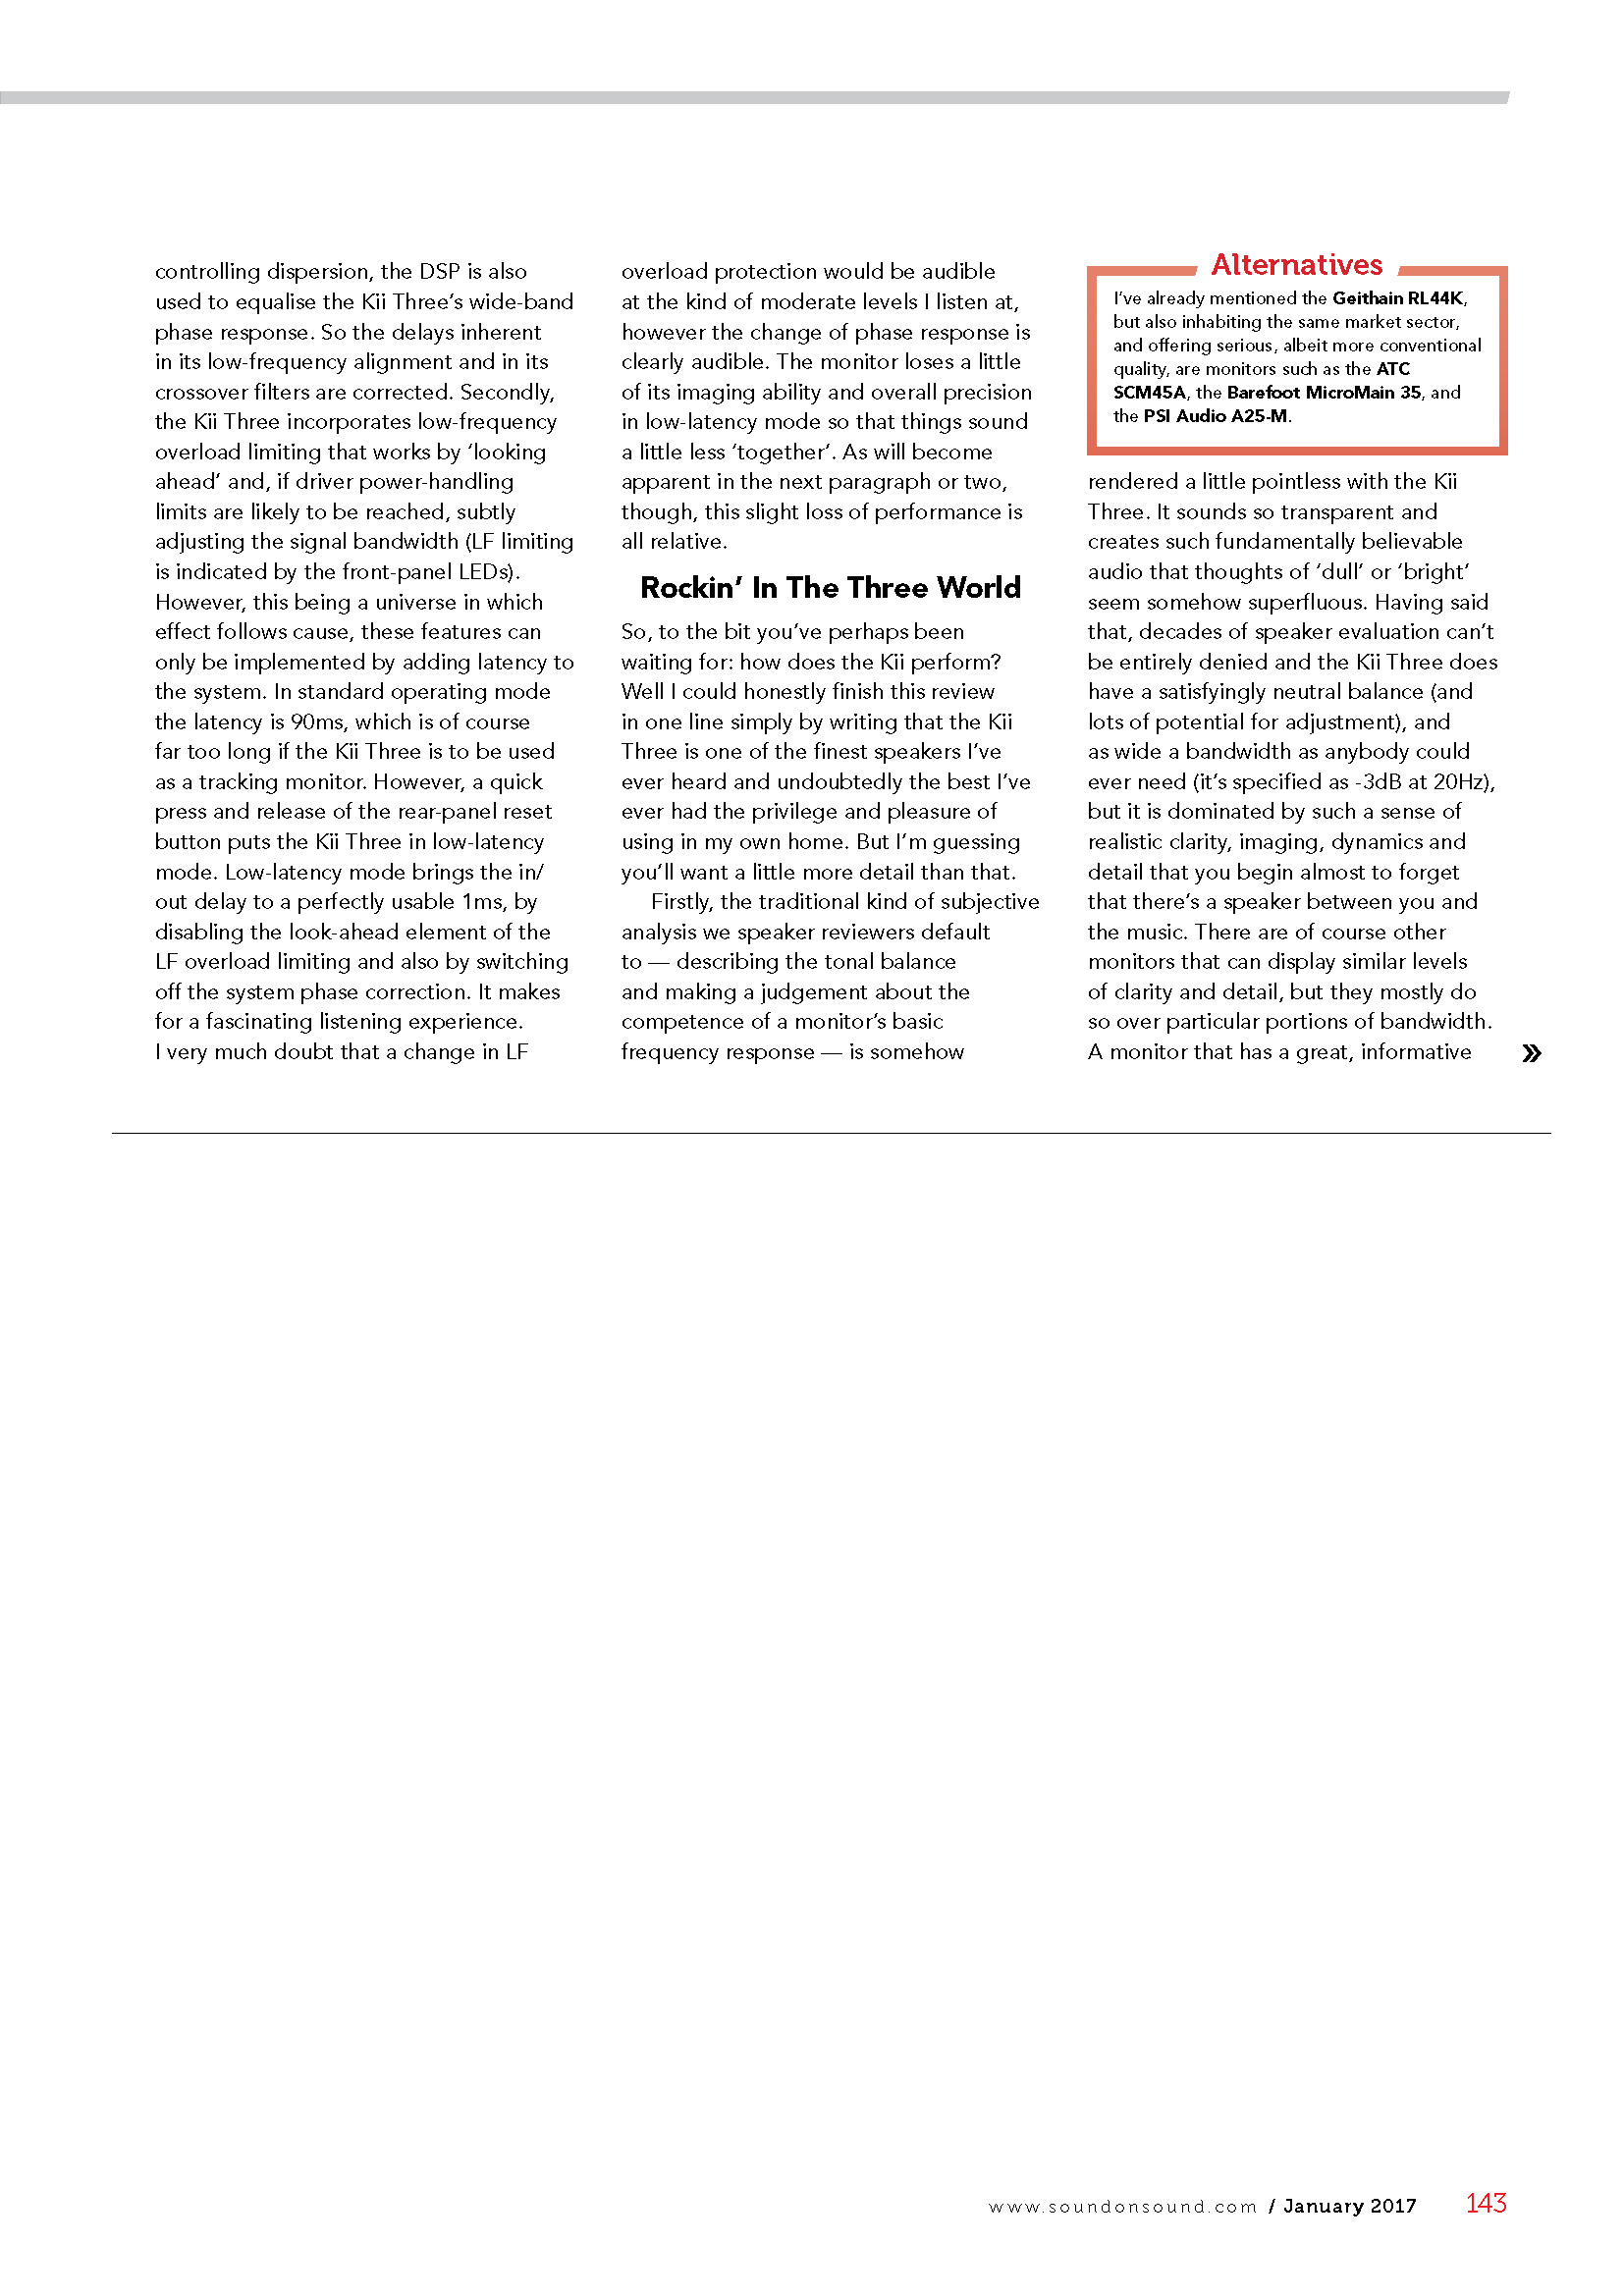 soundonsound012017kiithree_Page_5.jpg